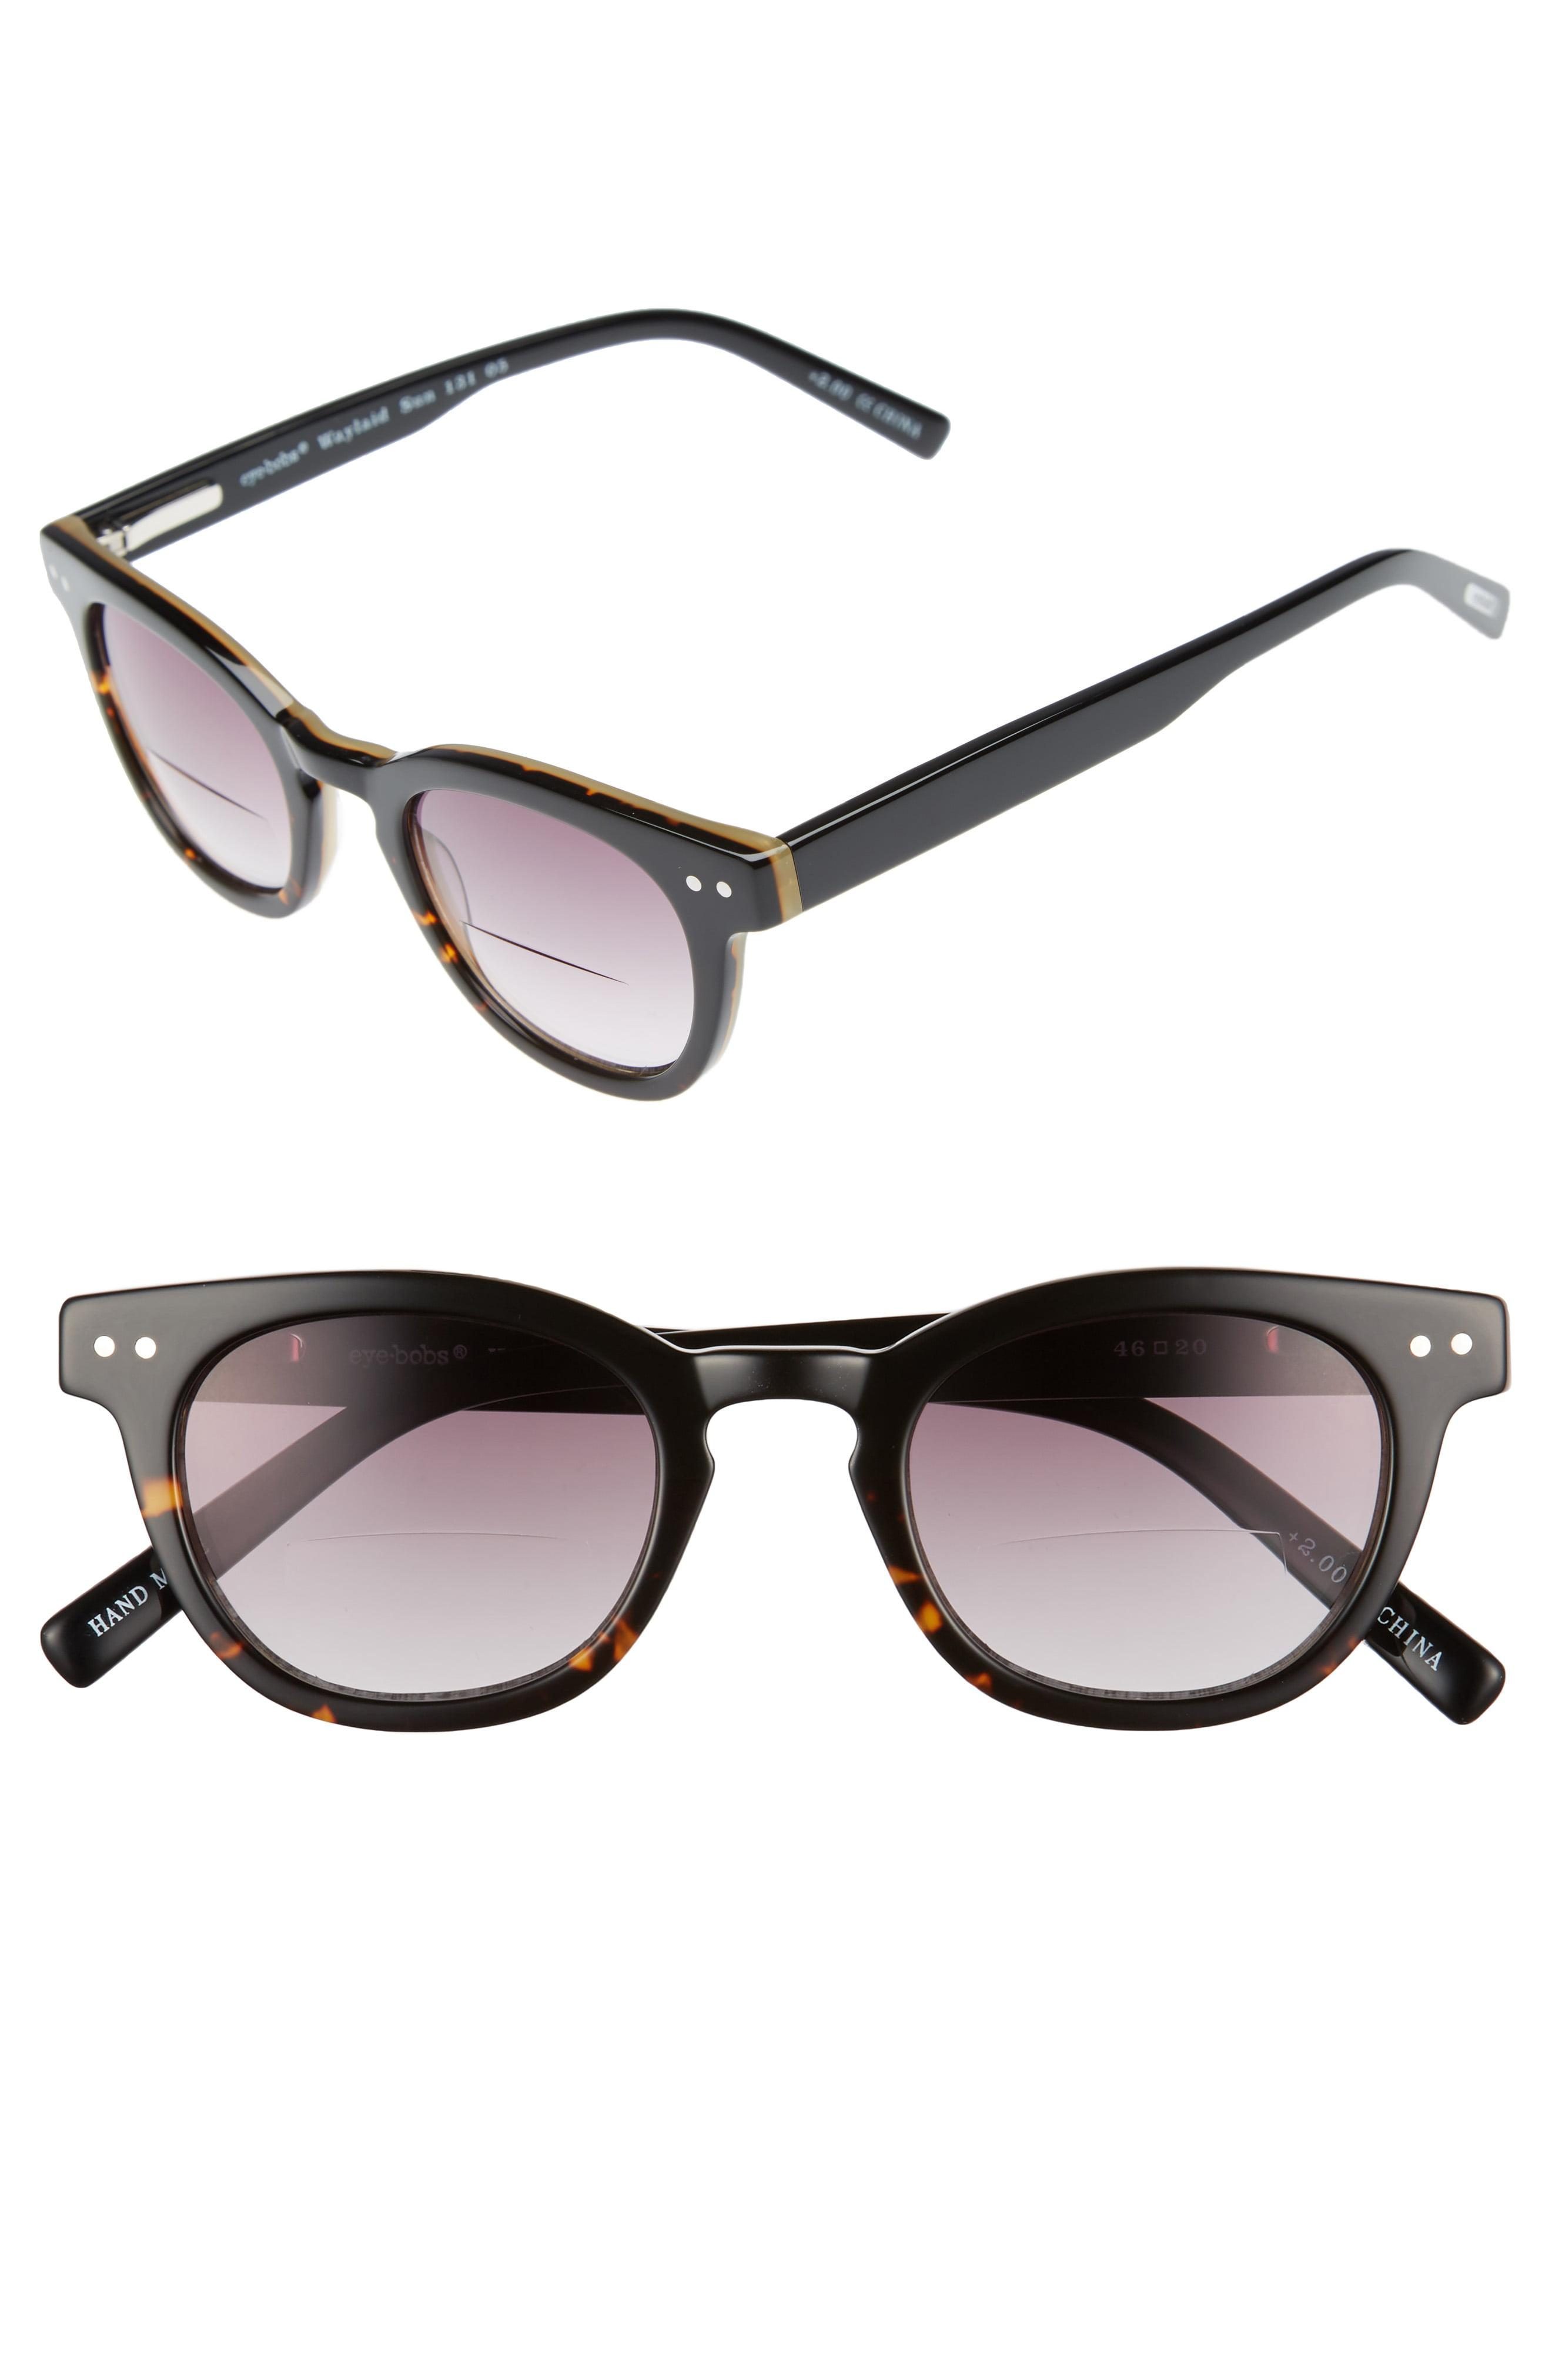 dd47bff2cca8 Lyst - Eyebobs Laid 46mm Reading Sunglasses - in Brown for Men